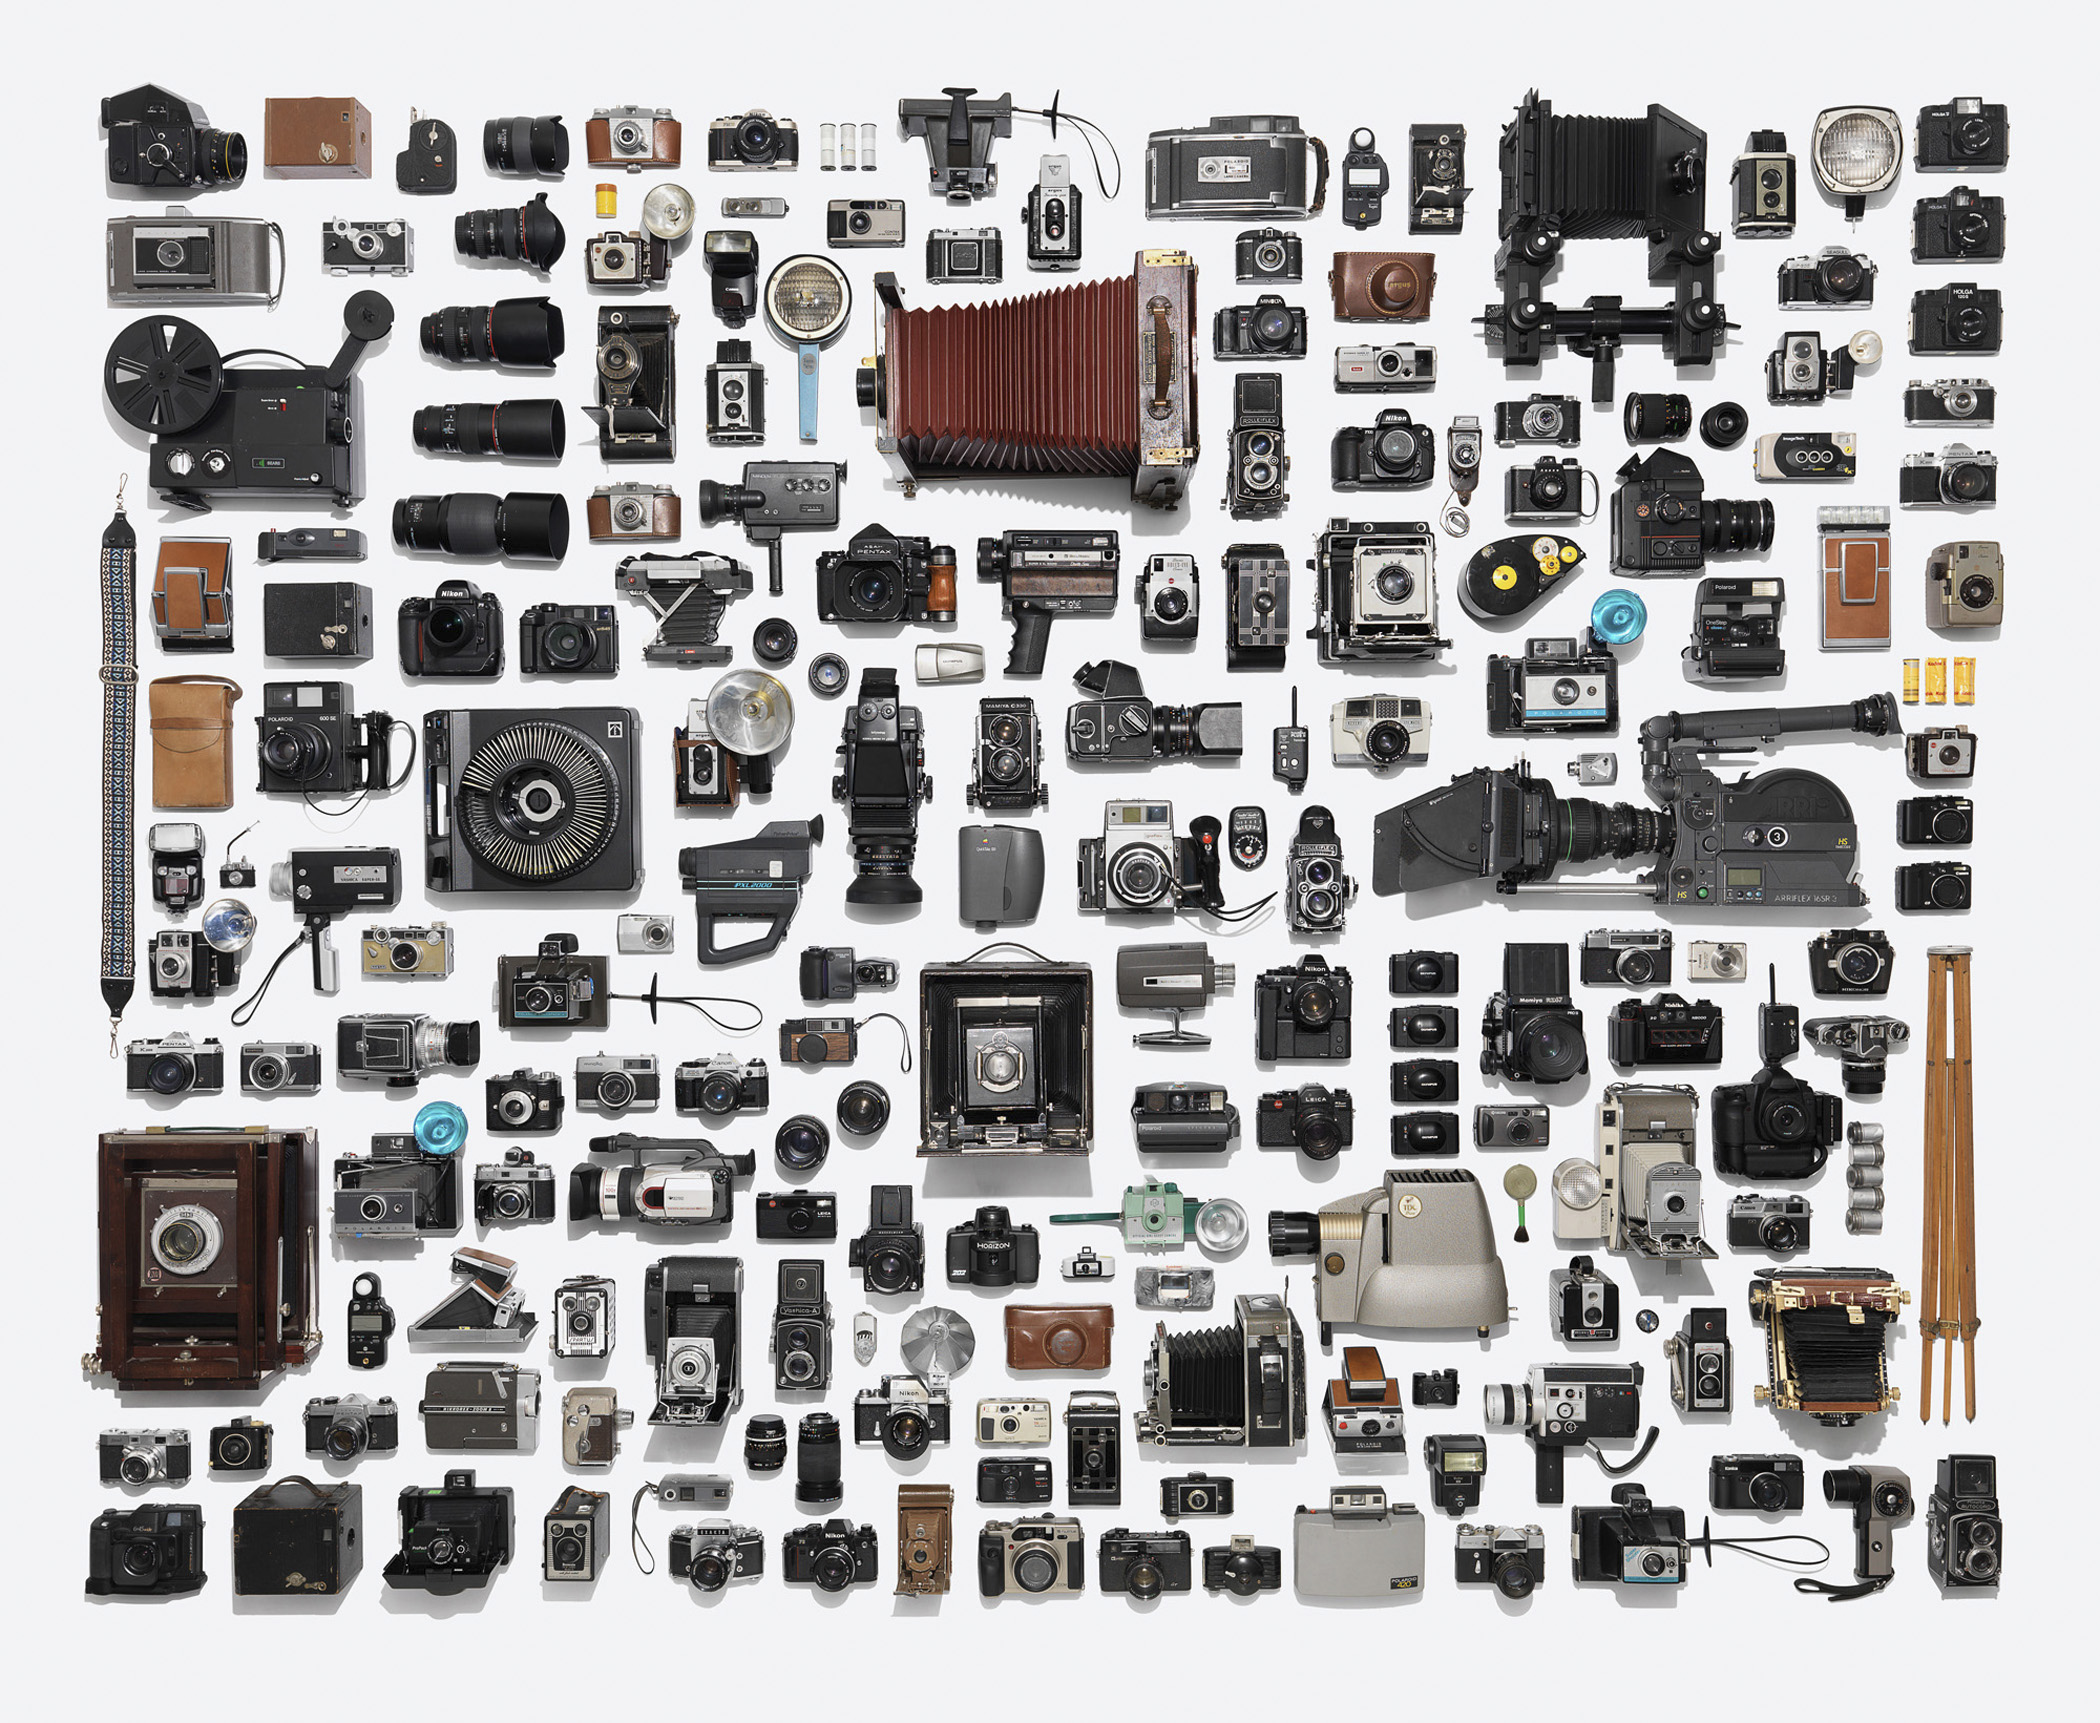 """Camera Collection. 1950 List Price of Rolleiflex: $275, per <a href=""""http://books.google.com/books?id=_l0zAQAAMAAJ&amp;pg=PA126&amp;dq=twin-lens+reflex+rolleiflex+camera+original+price&amp;hl=en&amp;sa=X&amp;ei=k1scVLanH5CsyASbgIKoCQ&amp;ved=0CDoQ6AEwAQ#v=onepage&amp;q=twin-lens%20reflex%20rolleiflex%20camera%20original%20price&amp;f=false"""" title=""""Popular Photography"""" target=""""_blank"""">Popular Photography</a>.  <strong>Today's equivalent:</strong> Canon EOS 5D Mark III. List Price: $3,399, available at <a href=""""http://www.usa.canon.com/cusa/consumer/products/cameras/slr_cameras/eos_5d_mark_iii"""" title=""""Canon EOS 5D Mark III"""" target=""""_blank"""">Canon U.S.A</a>."""